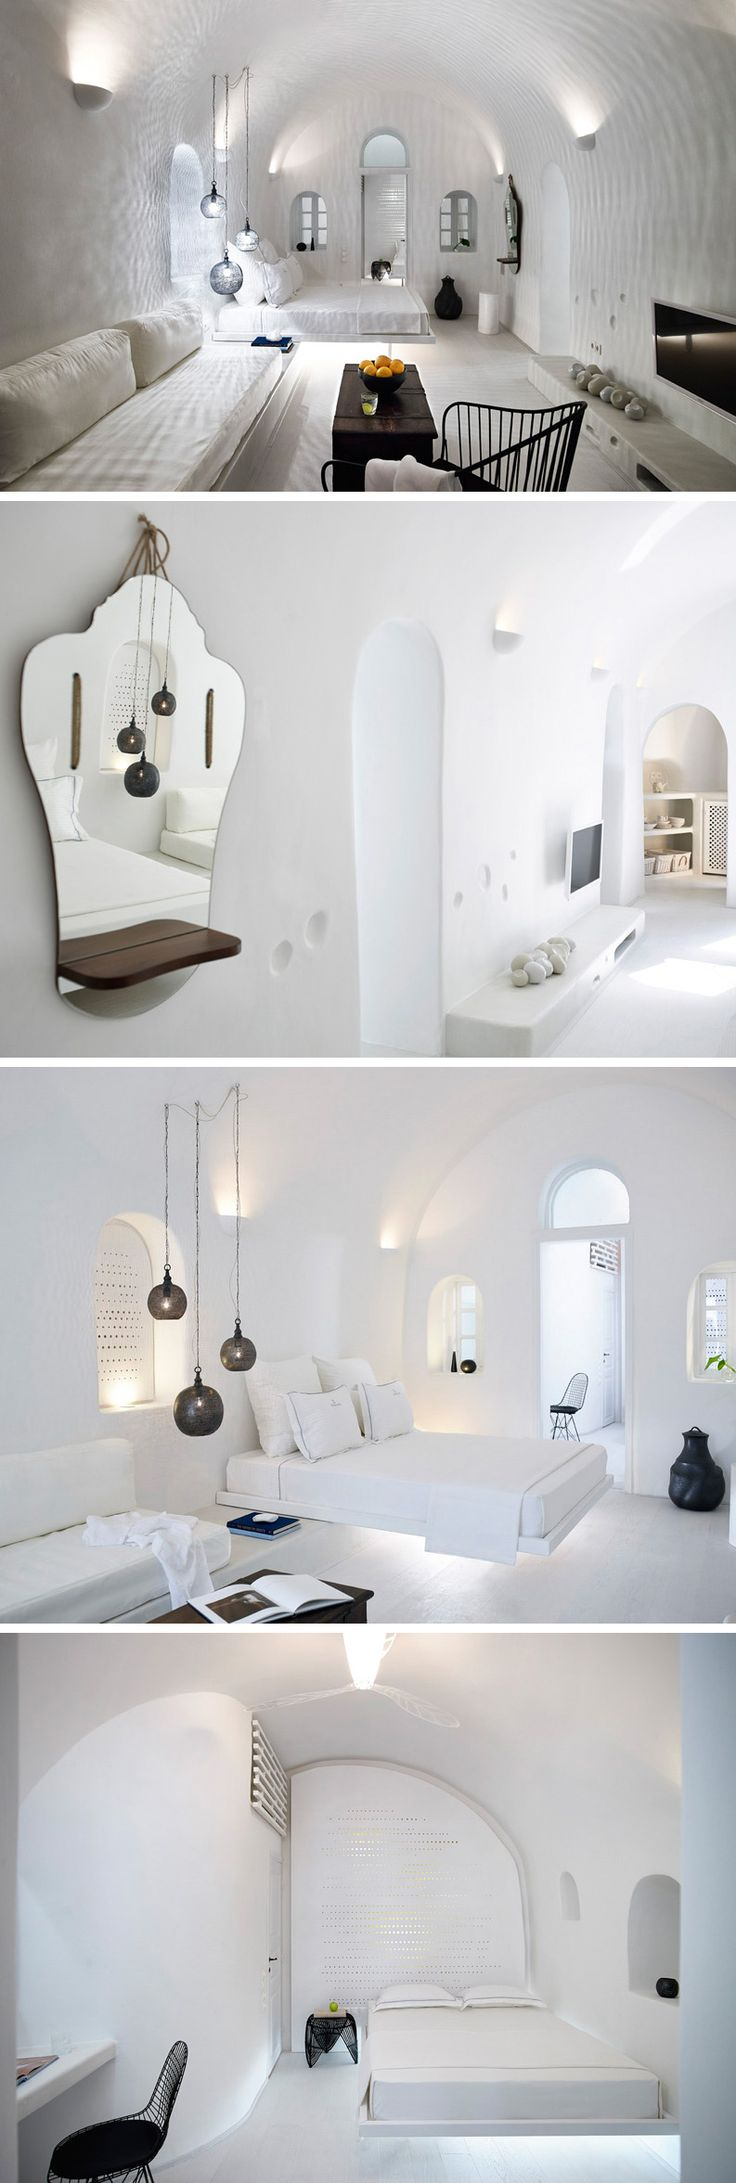 "PATSIOS Architecture Design The ""Cave Suite"" In The Mountains Of Santorini"